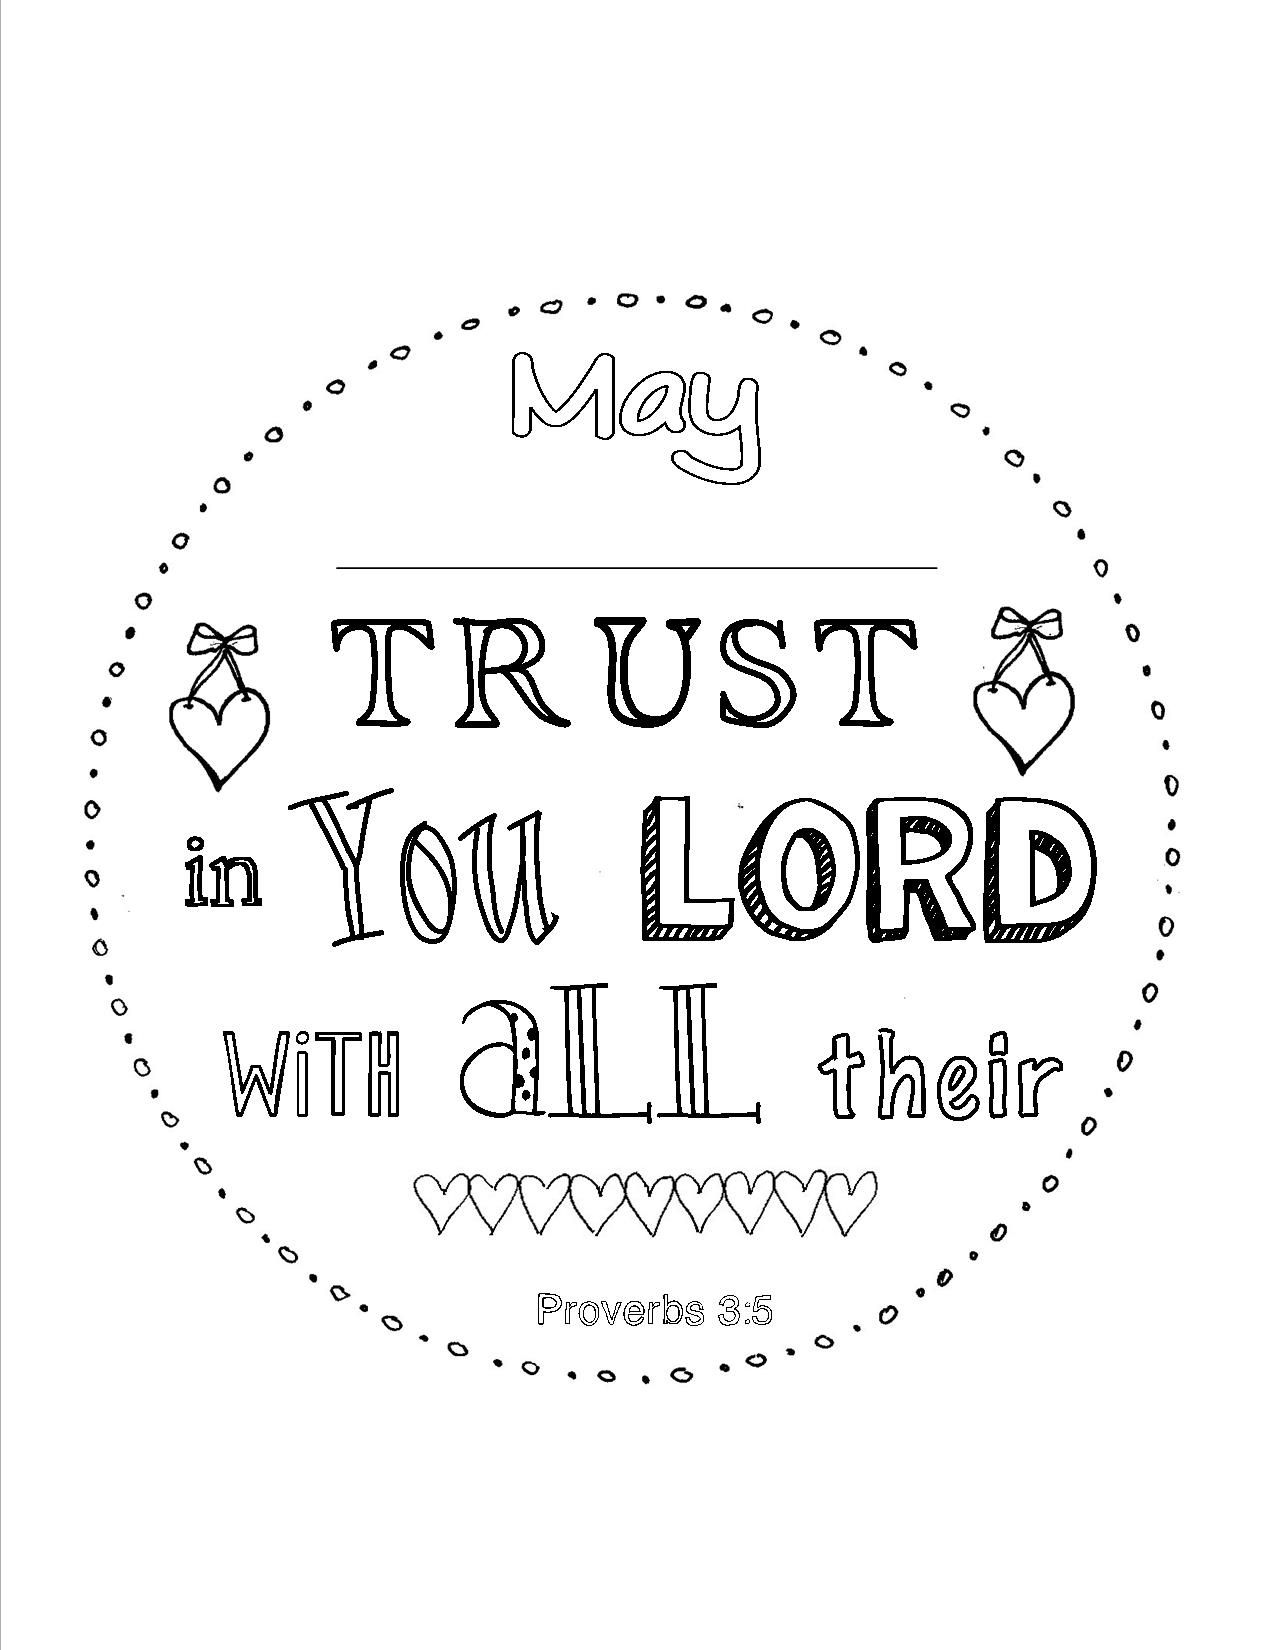 Proverbs 3 5 Personalized Scripture Coloring Page Coloring Book Pages Inspirational Words Scripture Coloring